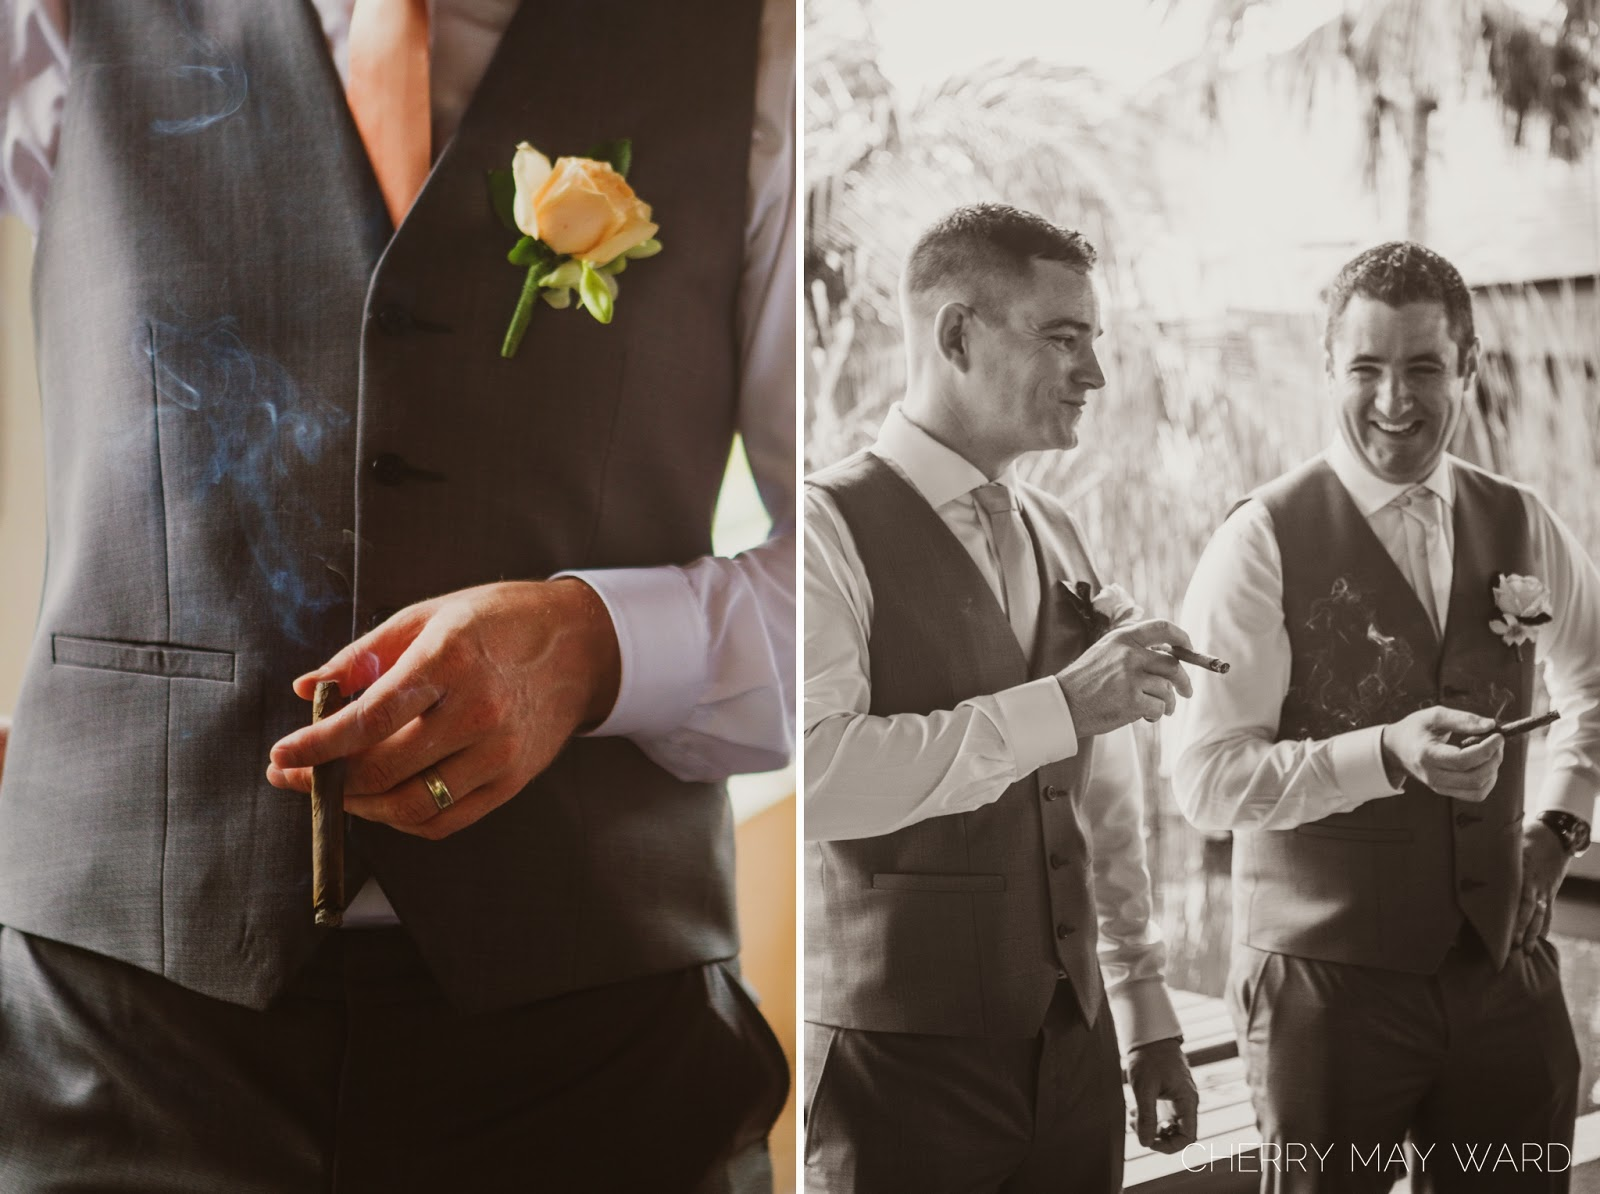 men with cigars laughing, having a good time, Koh Samui wedding, fun wedding photography with friends, fun with wedding party during photos, wedding portraits with cigars, Koh Samui wedding photographer, Cherry May Ward Photography